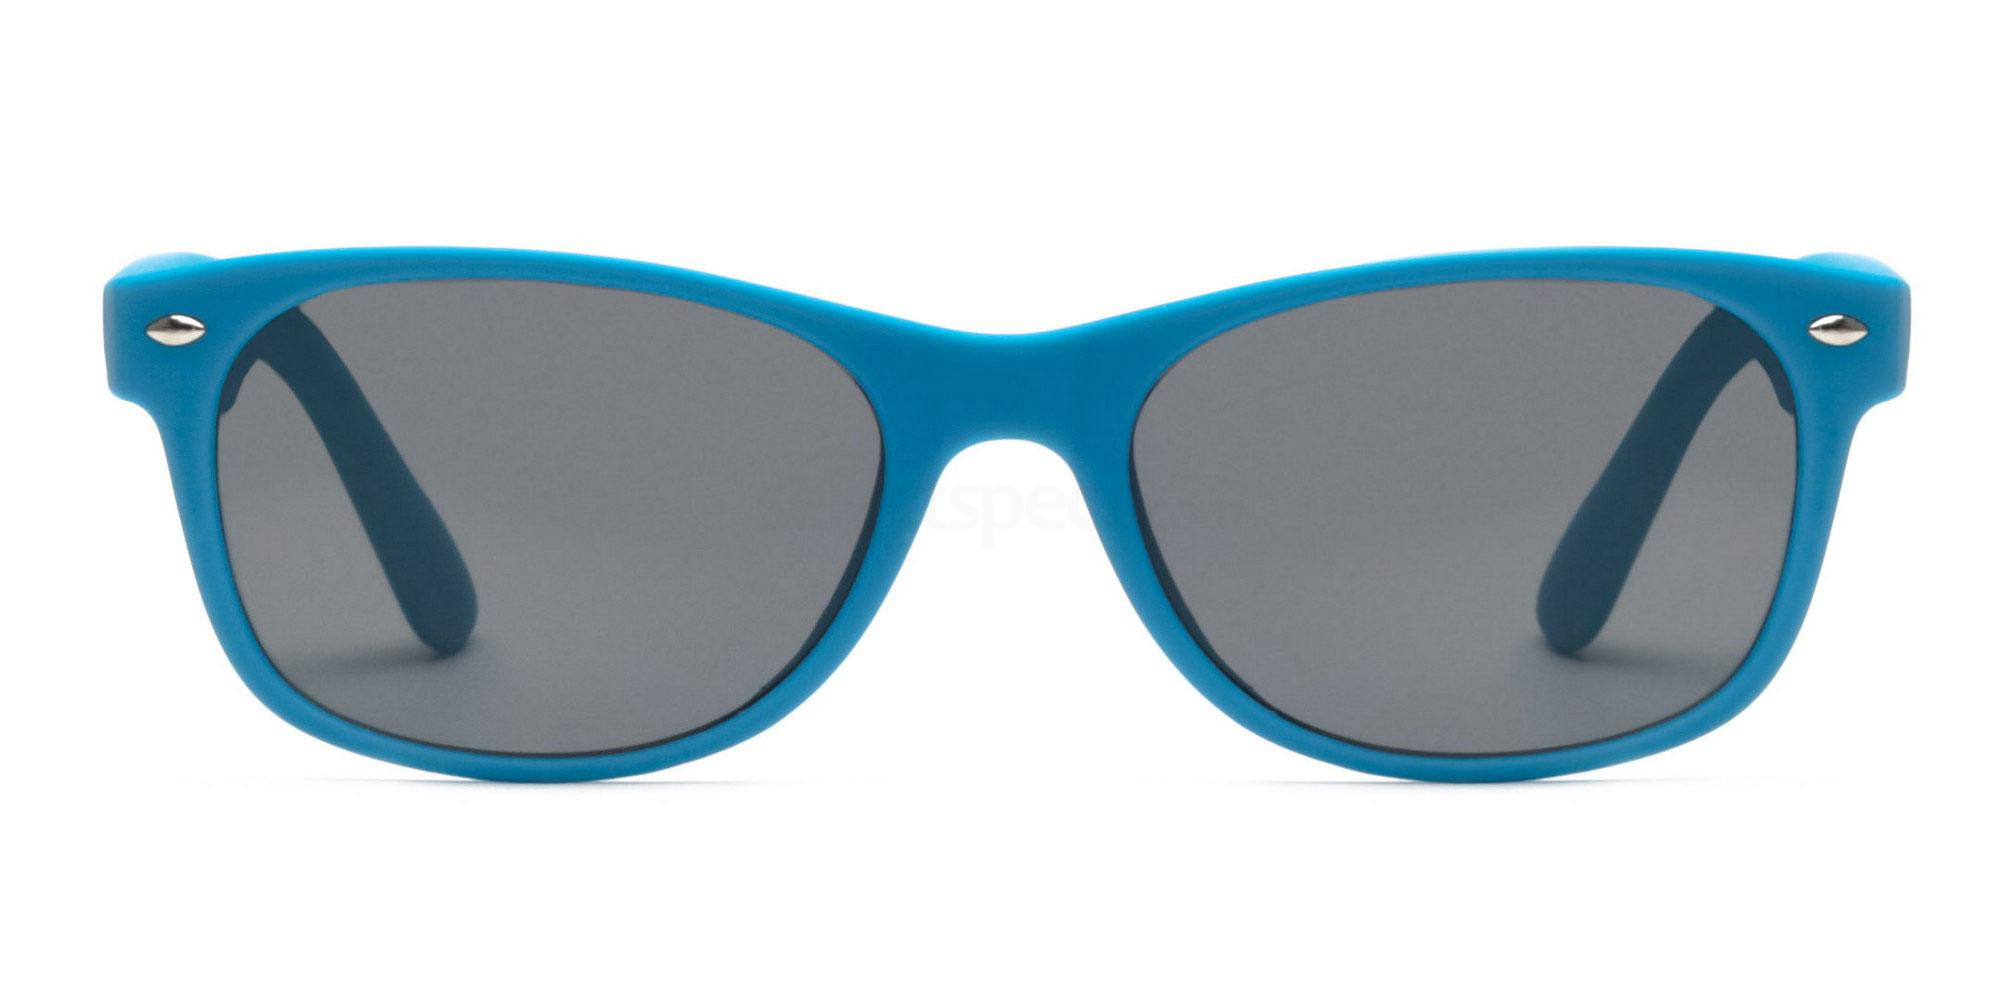 Light Blue S8122 - Light Blue (Sunglasses) Sunglasses, Savannah